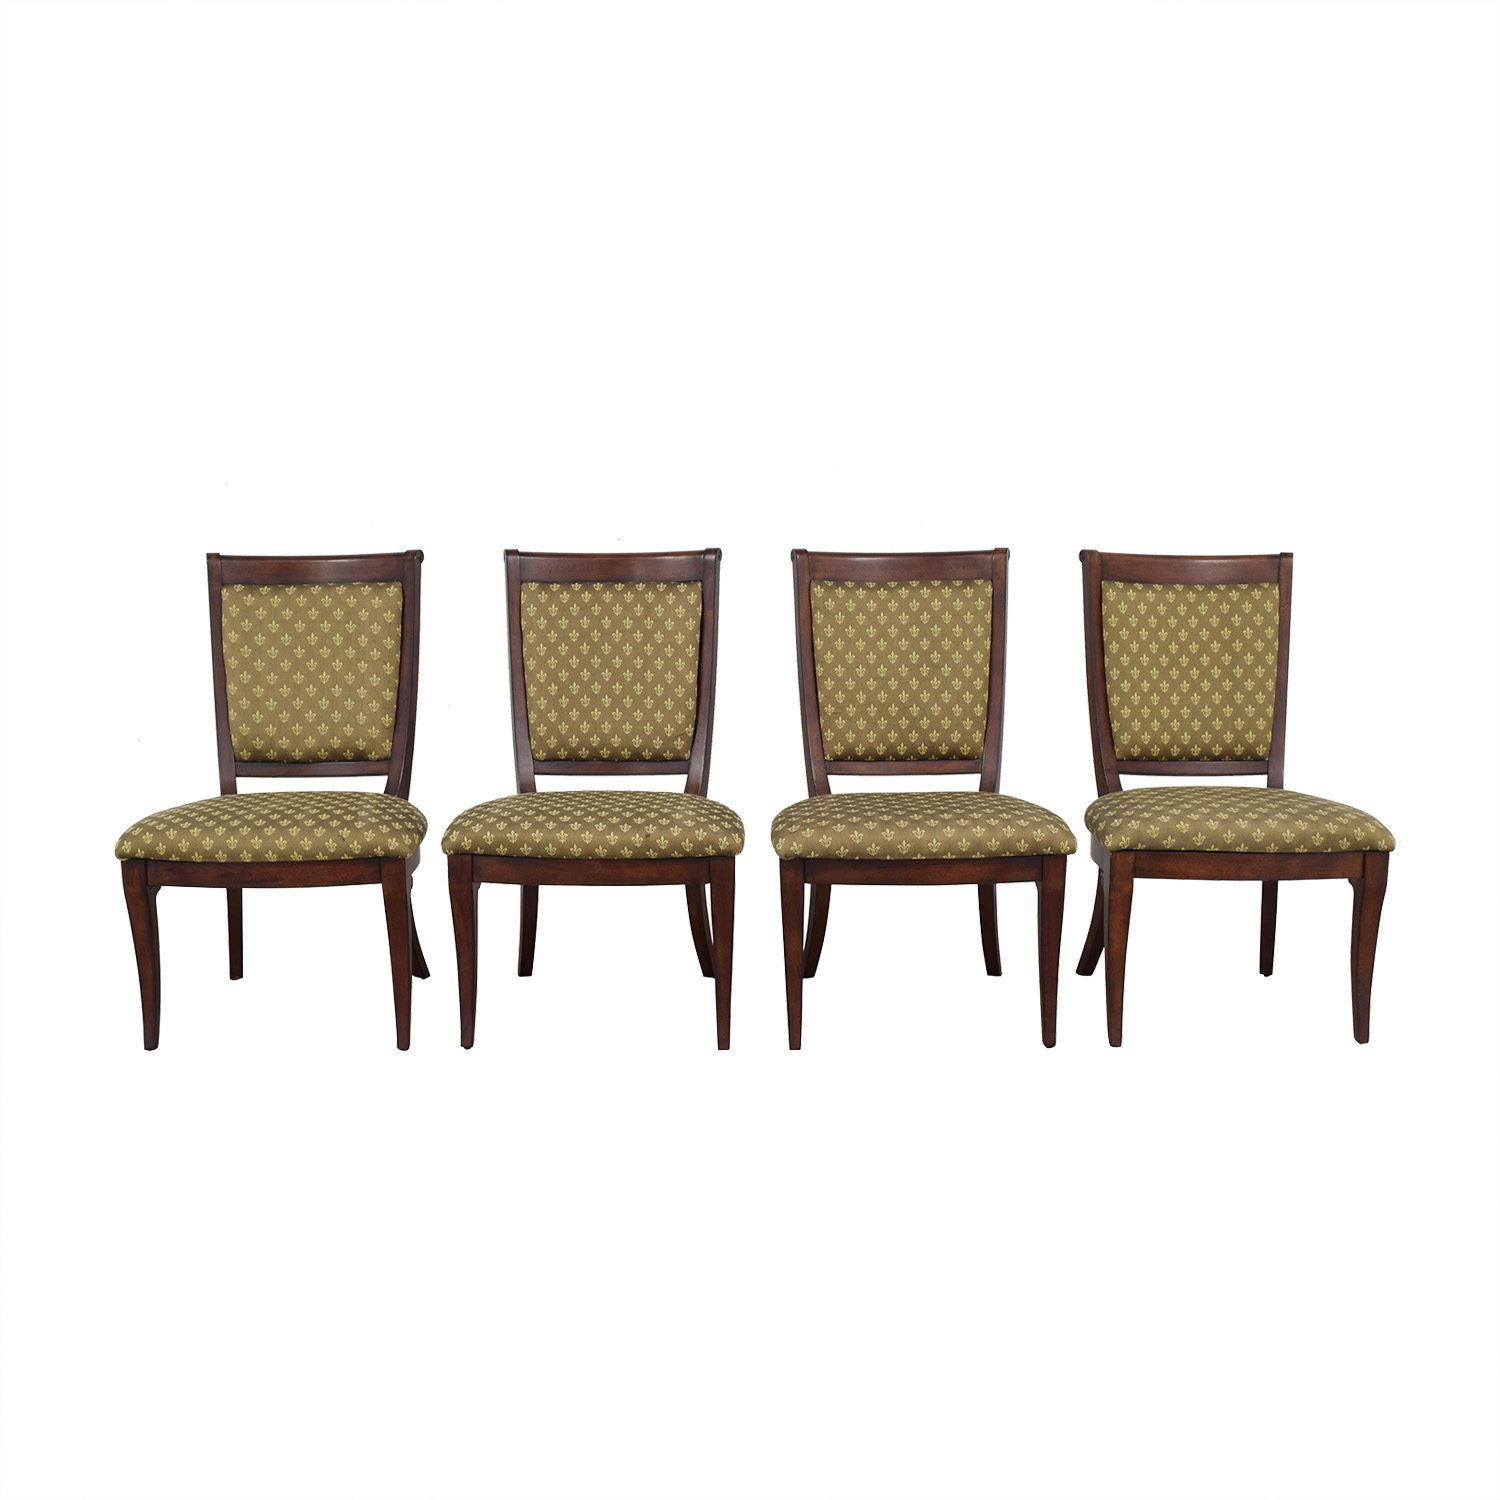 Bassett Furniture Bassett Furniture Upholstered Side Chairs Chairs